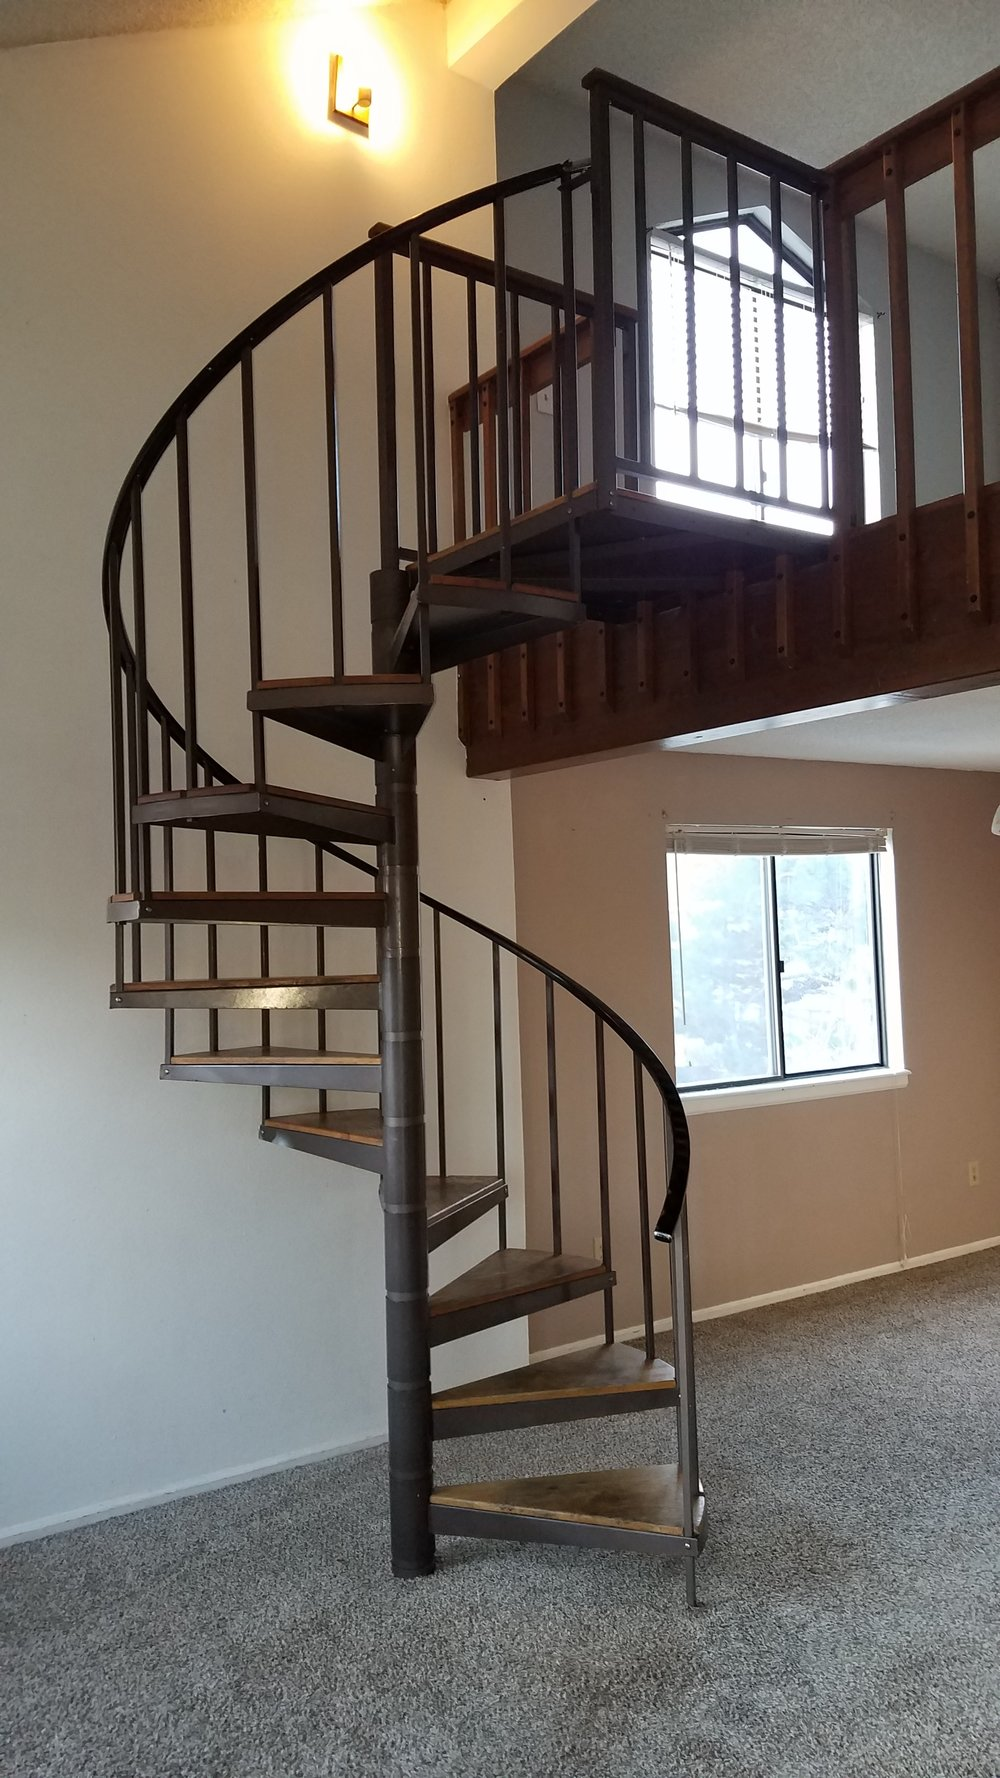 """Spiral staircases, open risers and balusters spaced more than 4"""" apart are all potential safety hazard for small kiddos and pets. Also moving furniture up and down has got to be a nightmare."""